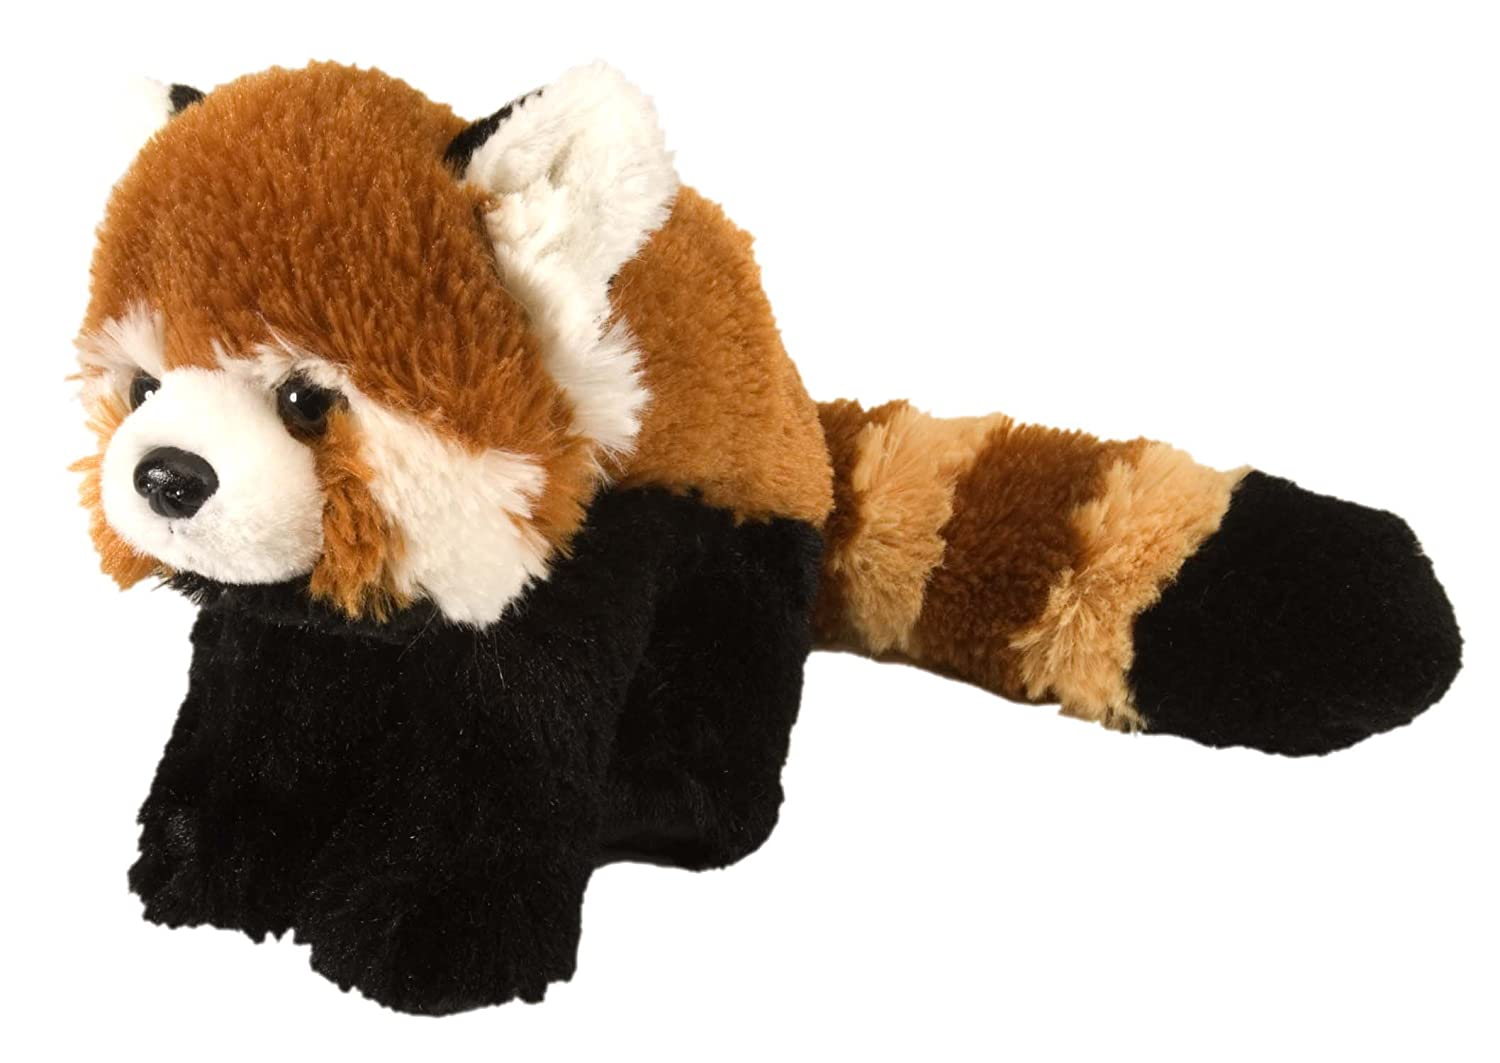 Amazon.com: Wild Republic Red Panda Plush, Stuffed Animal, Plush Toy, Gifts for Kids, Cuddlekins 8 Inches: Toys & Games